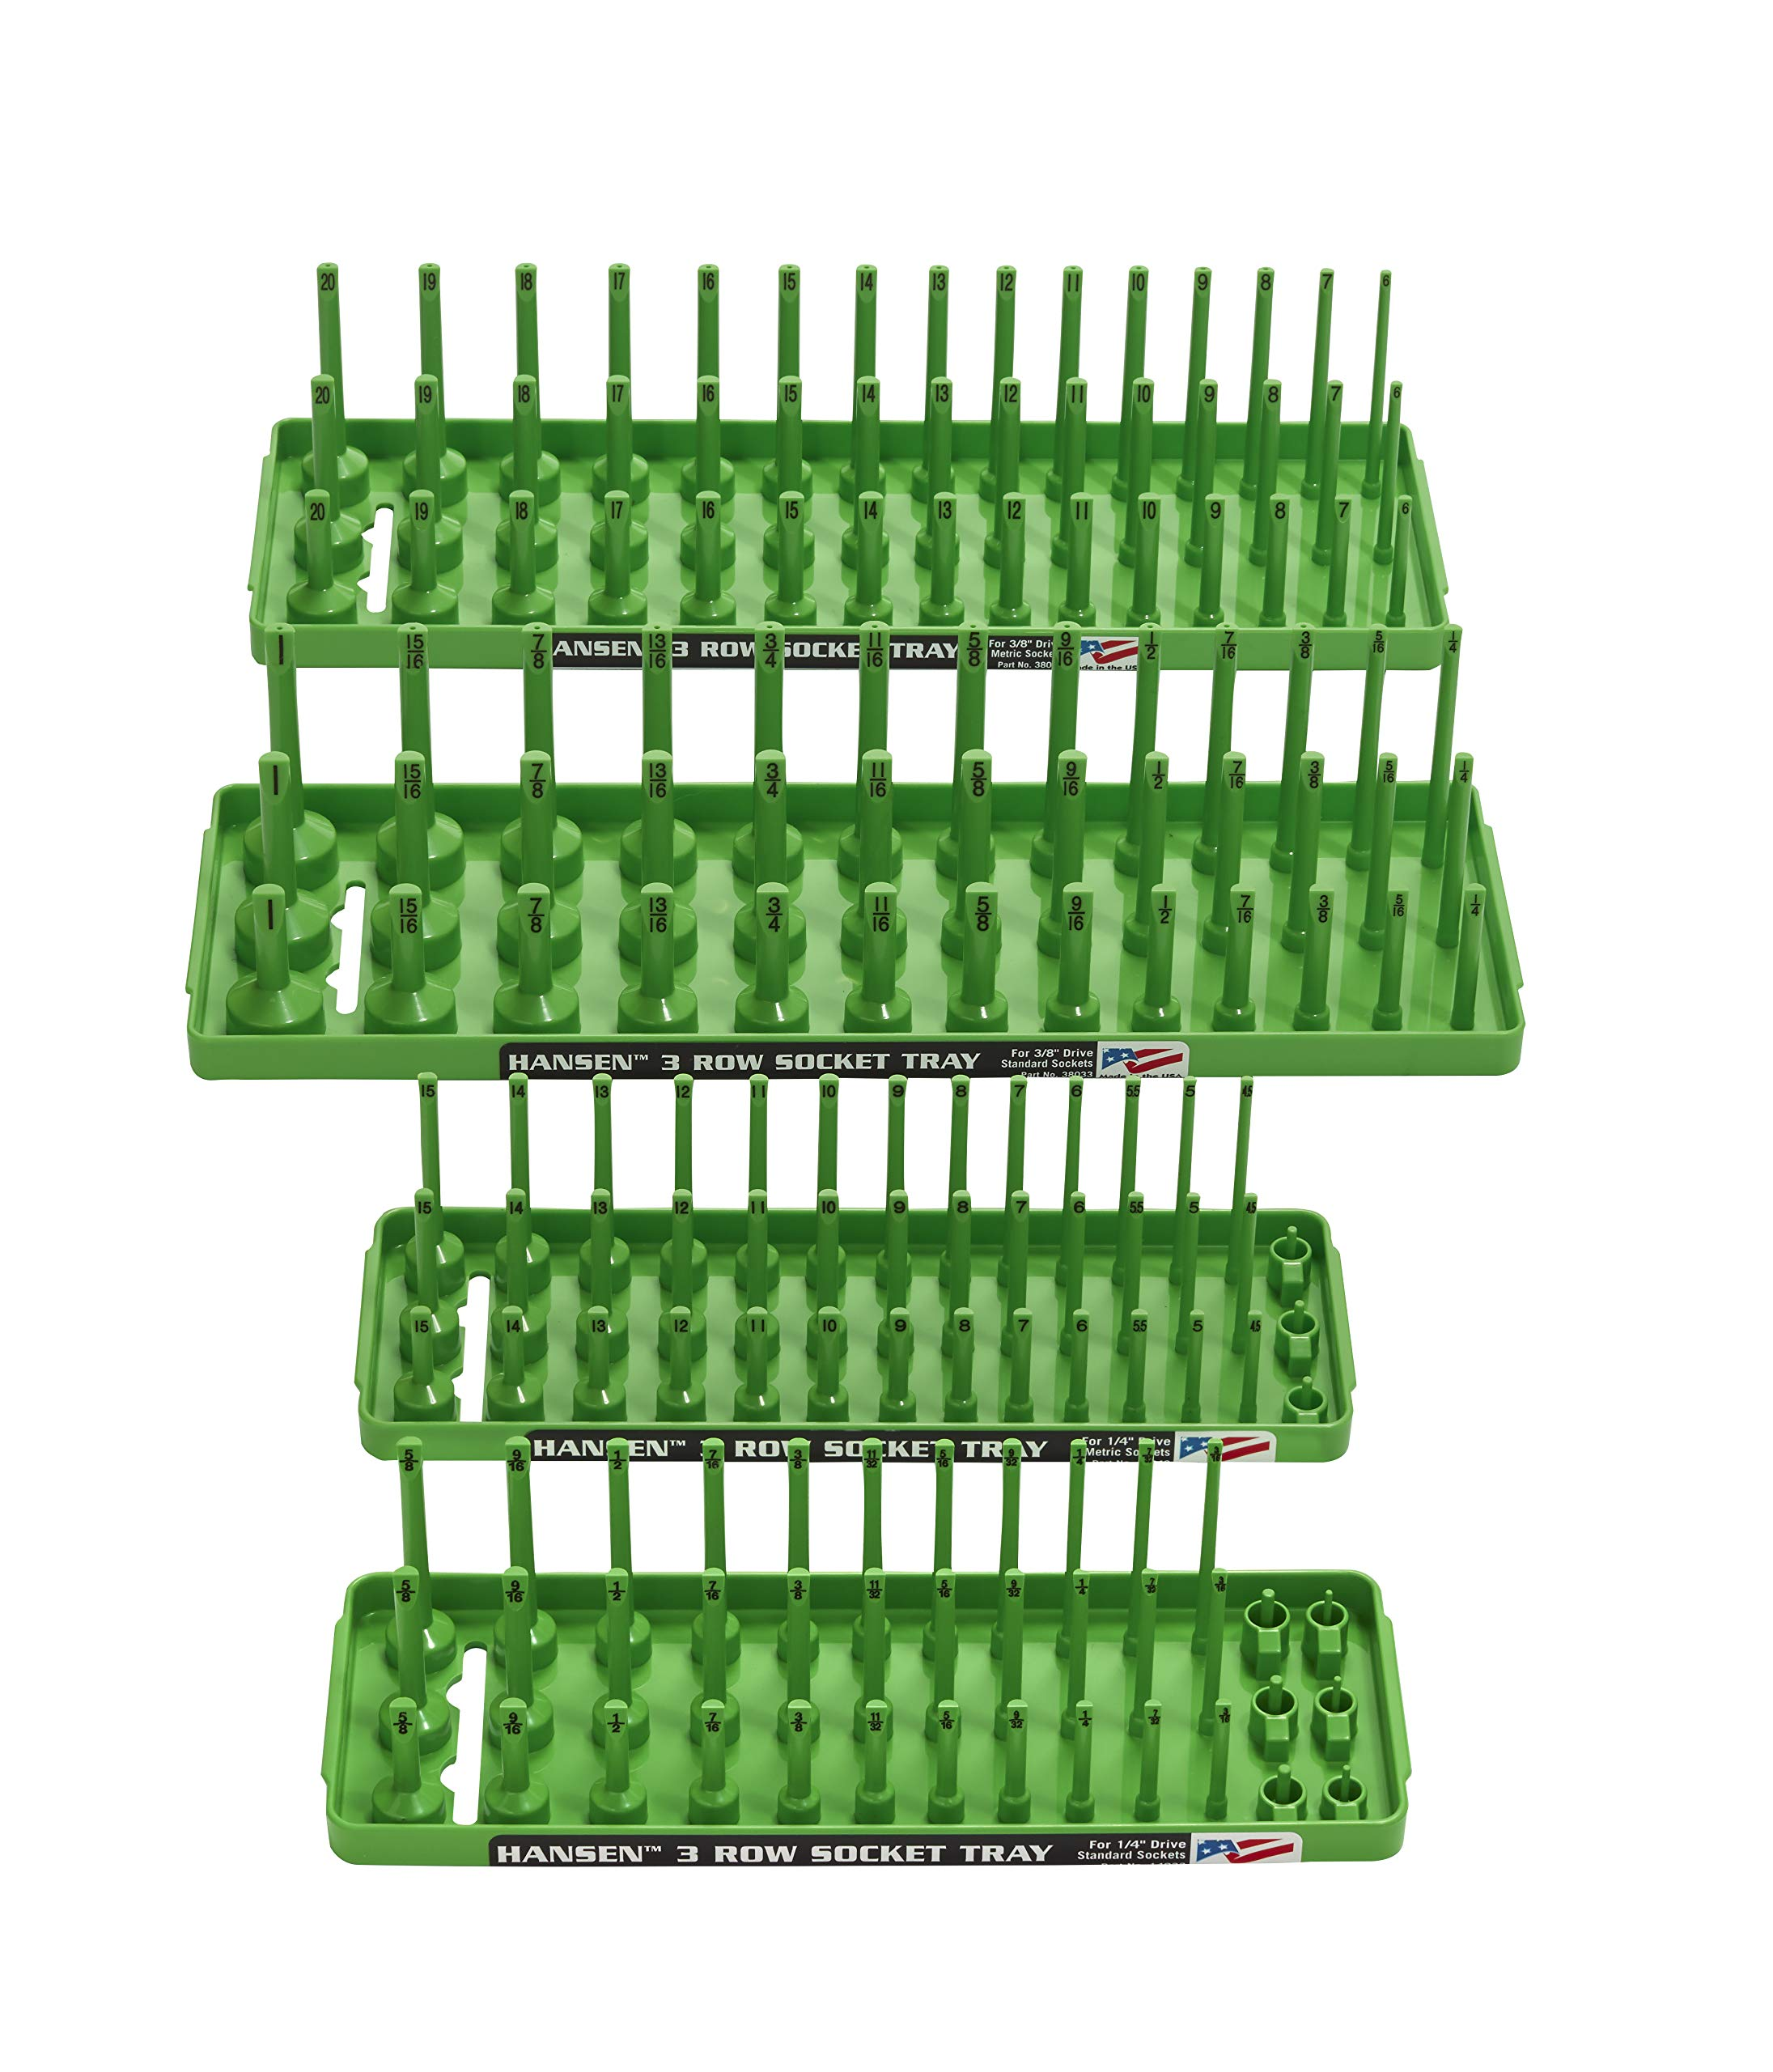 Hansen Global 92004 SAE & Metric, 3-Row Socket Tray Set - 4-Pieces, Green by Hansen Global